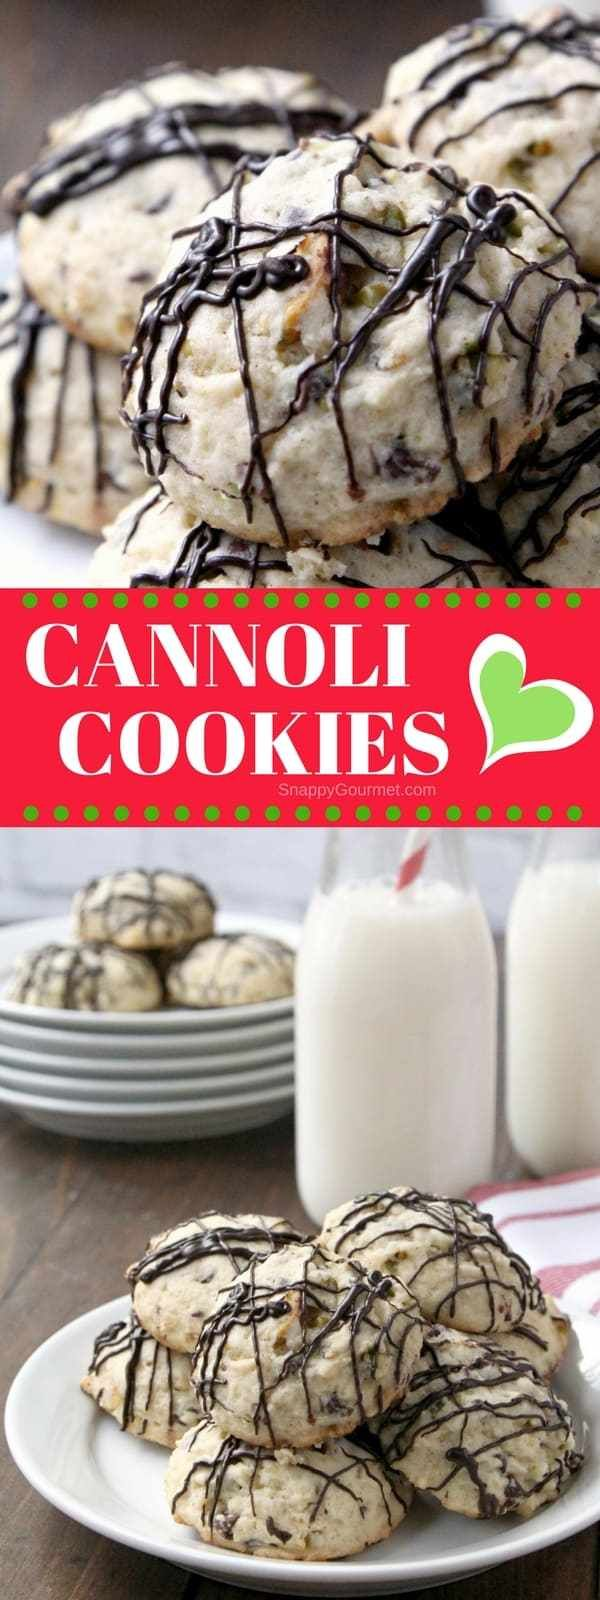 Cannoli Cookies - easy Italian Christmas Cookie with pistachios, chocolate, ricotta, and orange zest. SnappyGourmet.com